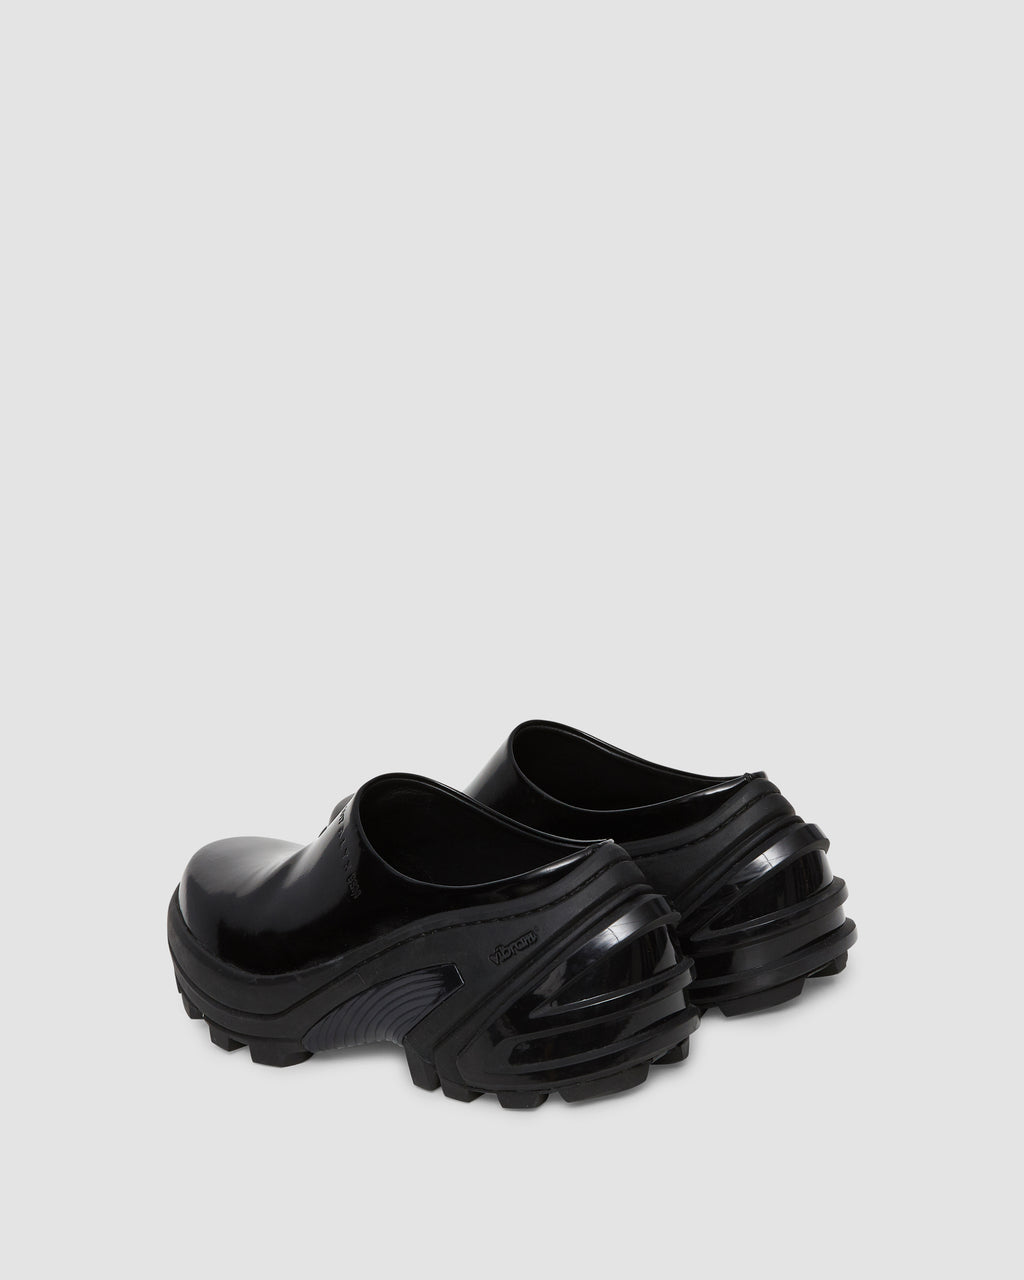 1017 ALYX 9SM | CLOG | Shoe | BLACK, Google Shopping, Man, MULES, S20, S20 Drop II, Shoes, UNISEX, Woman